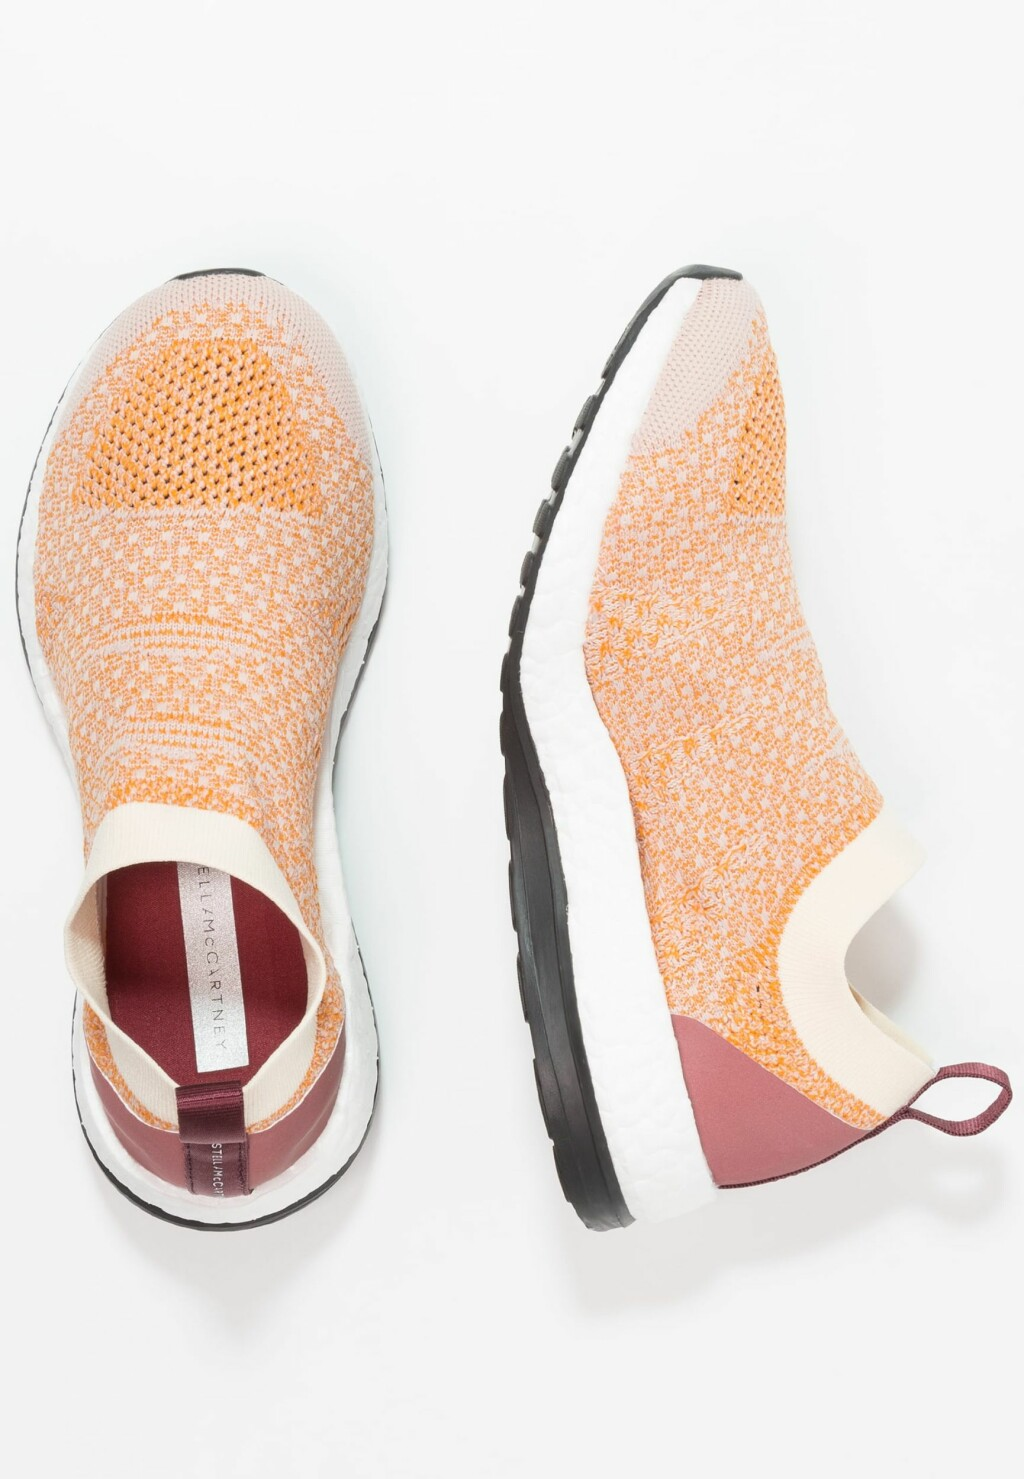 Sko fra Stella McCartney for Adidas via Zalando.no |1275,-